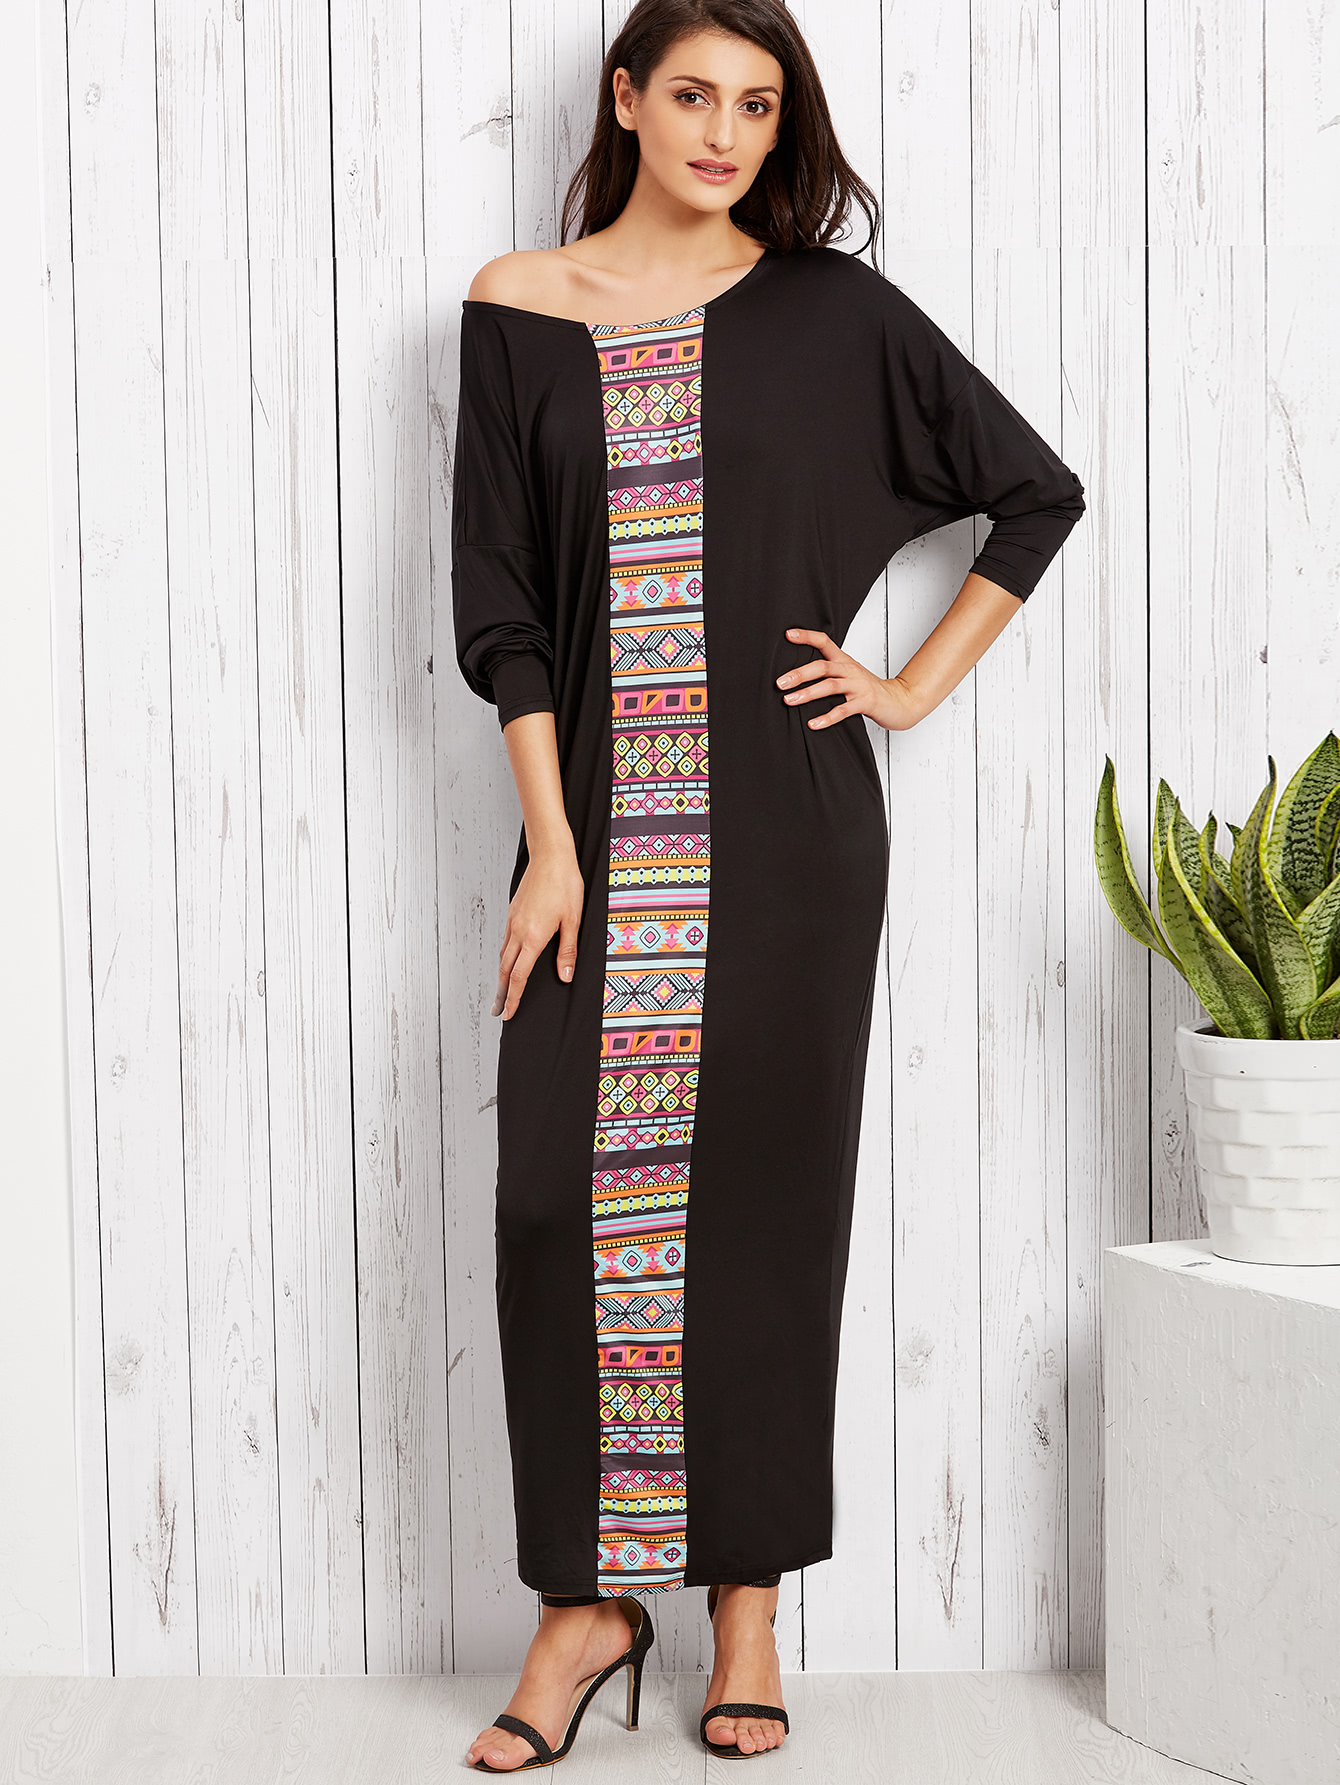 Tribal Print Dolman Sleeve Maxi Dress -SheIn(Sheinside)